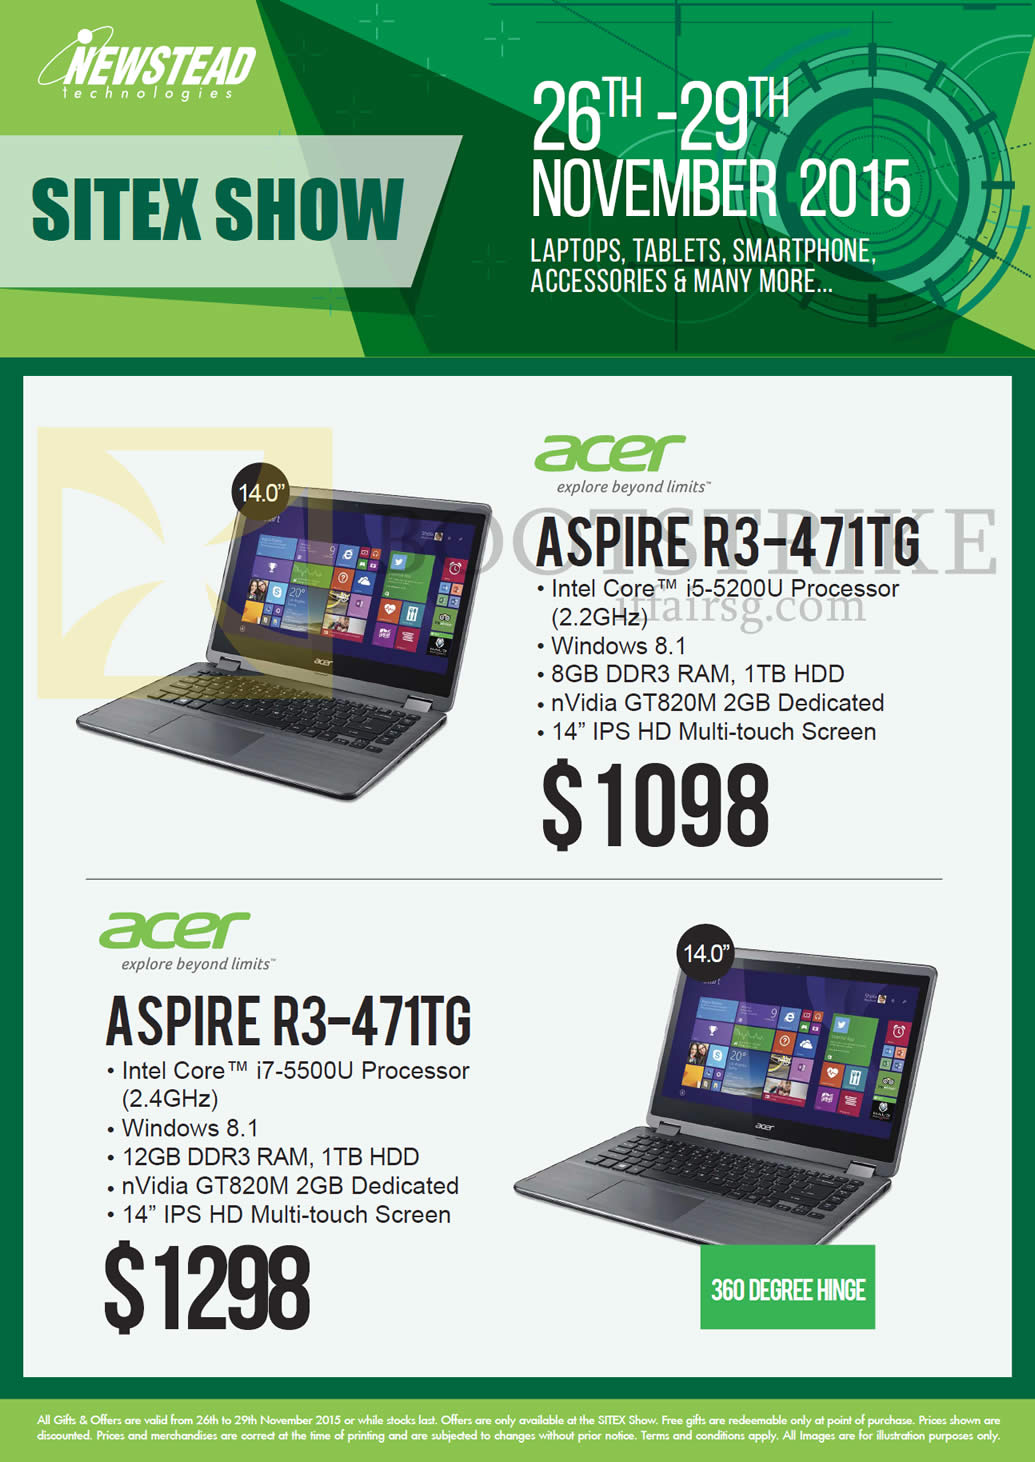 SITEX 2015 price list image brochure of Acer Newstead Notebooks Aspire, R3-471TG, R3-471TG